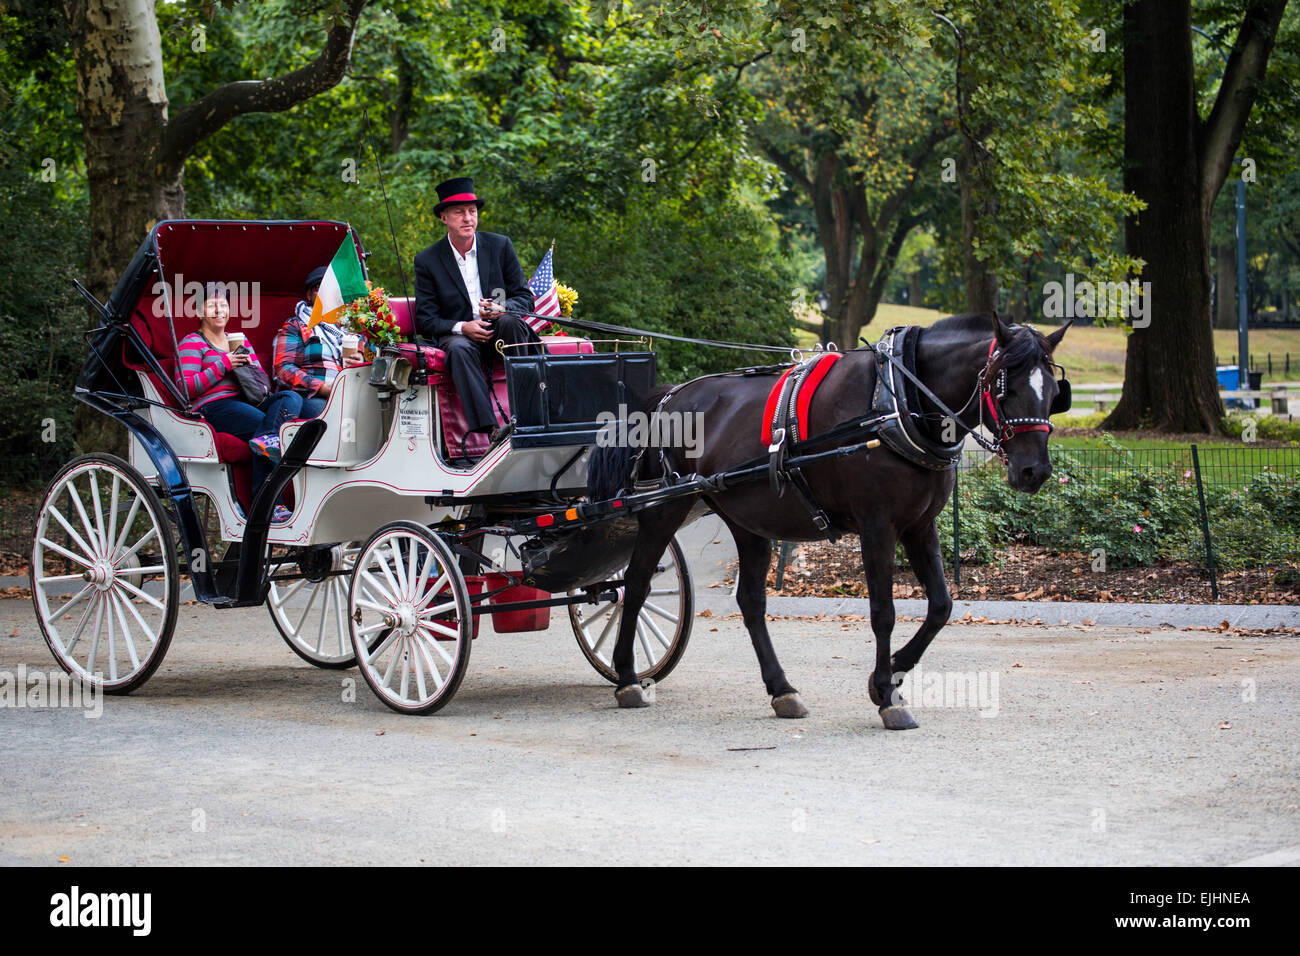 carriage ride stock photos carriage ride stock images alamy. Black Bedroom Furniture Sets. Home Design Ideas